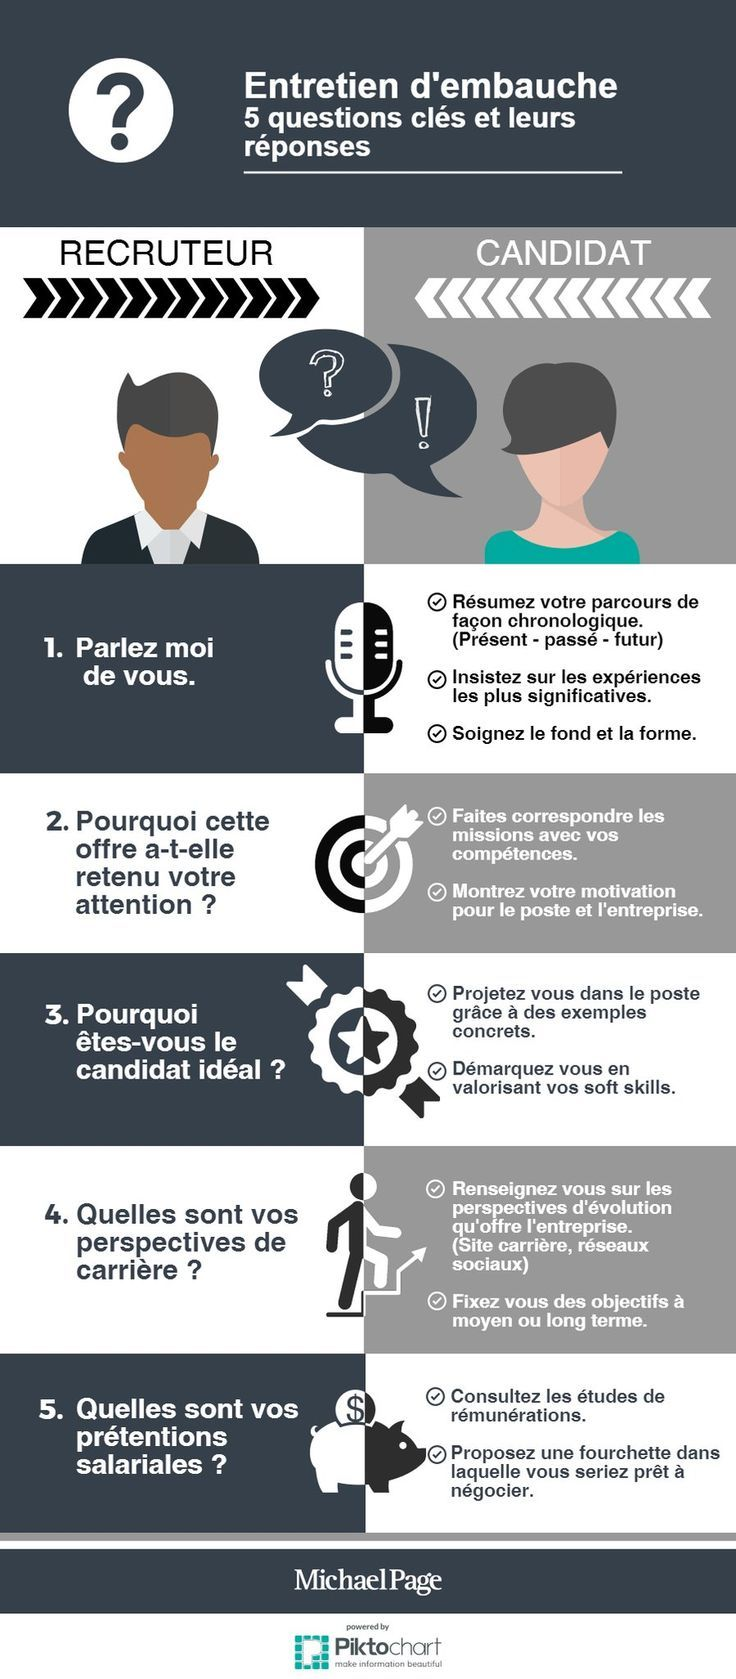 Questions and responses for a job interview in French.